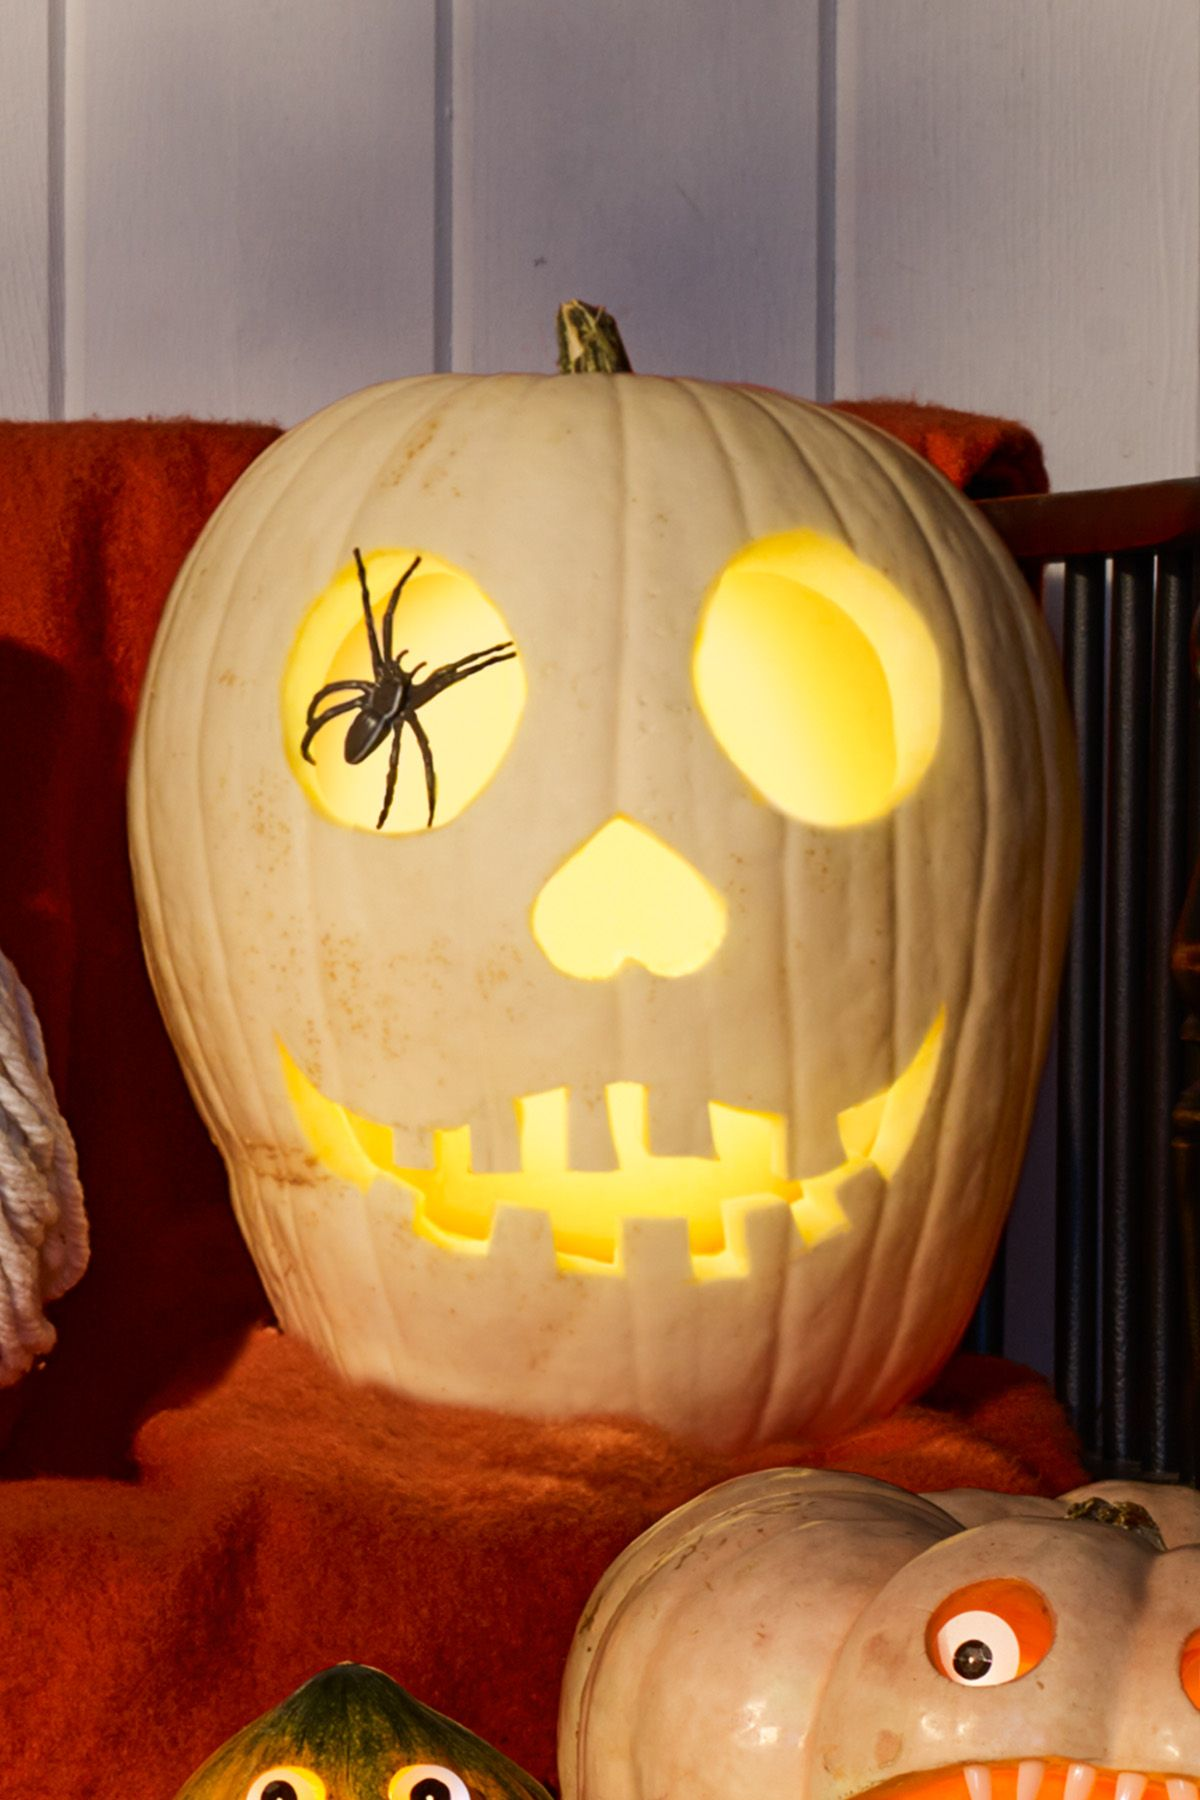 60 Best Pumpkin Carving Ideas 2018 Creative Jack O Lantern Designs